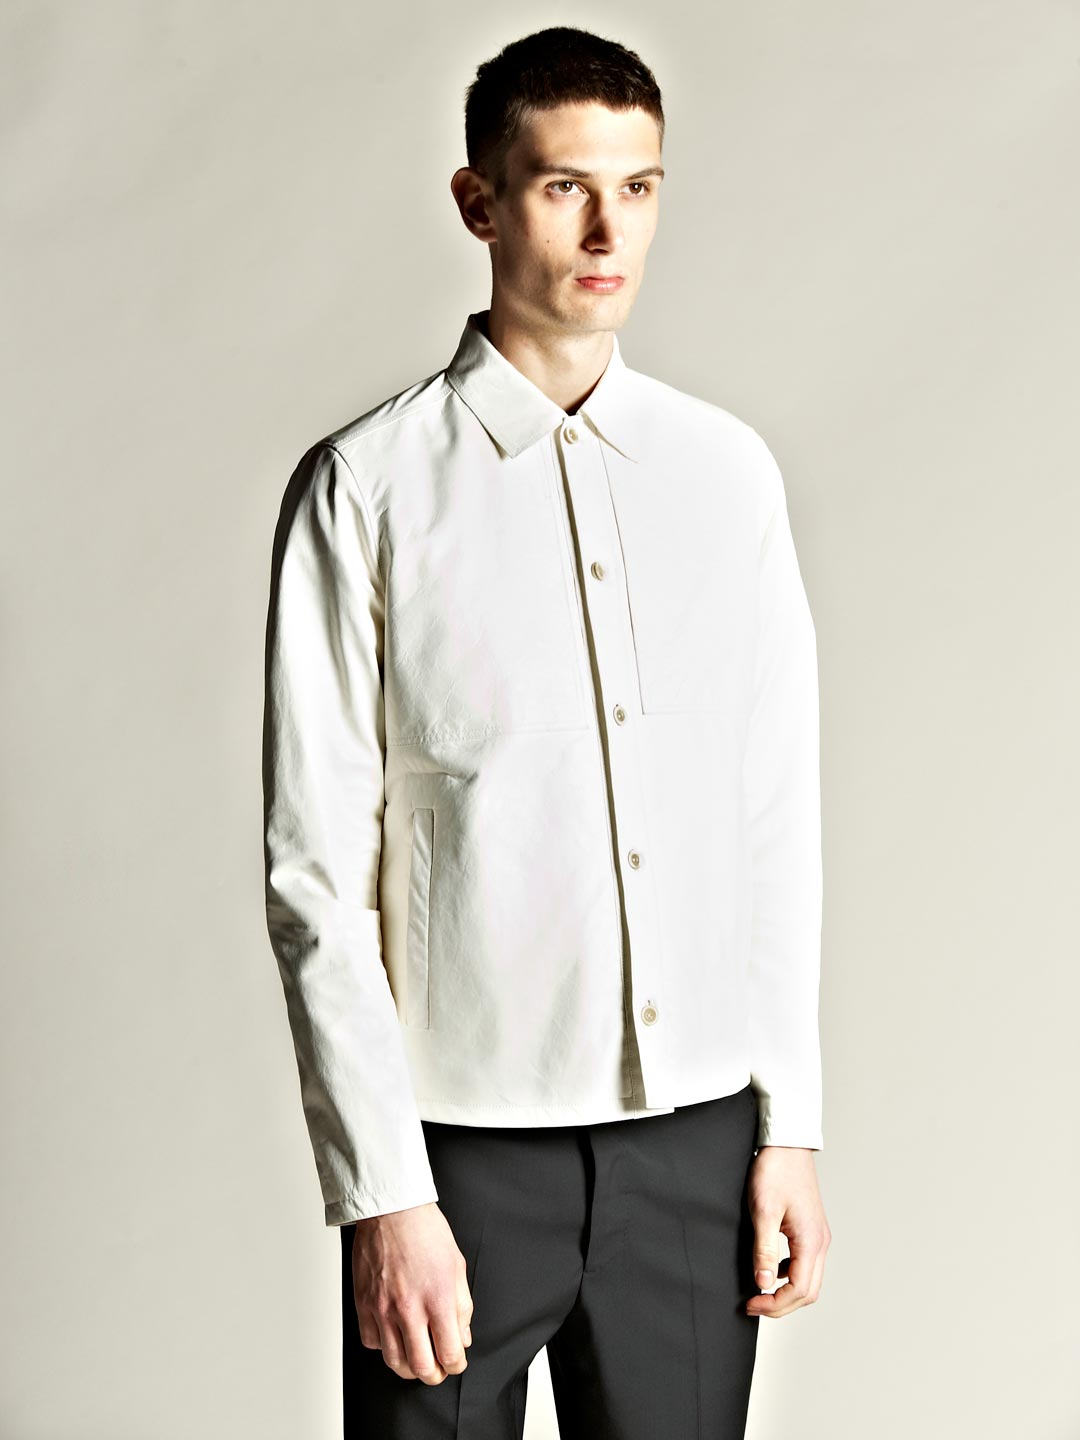 lyst jil sander mens twins leather jacket in white for men. Black Bedroom Furniture Sets. Home Design Ideas